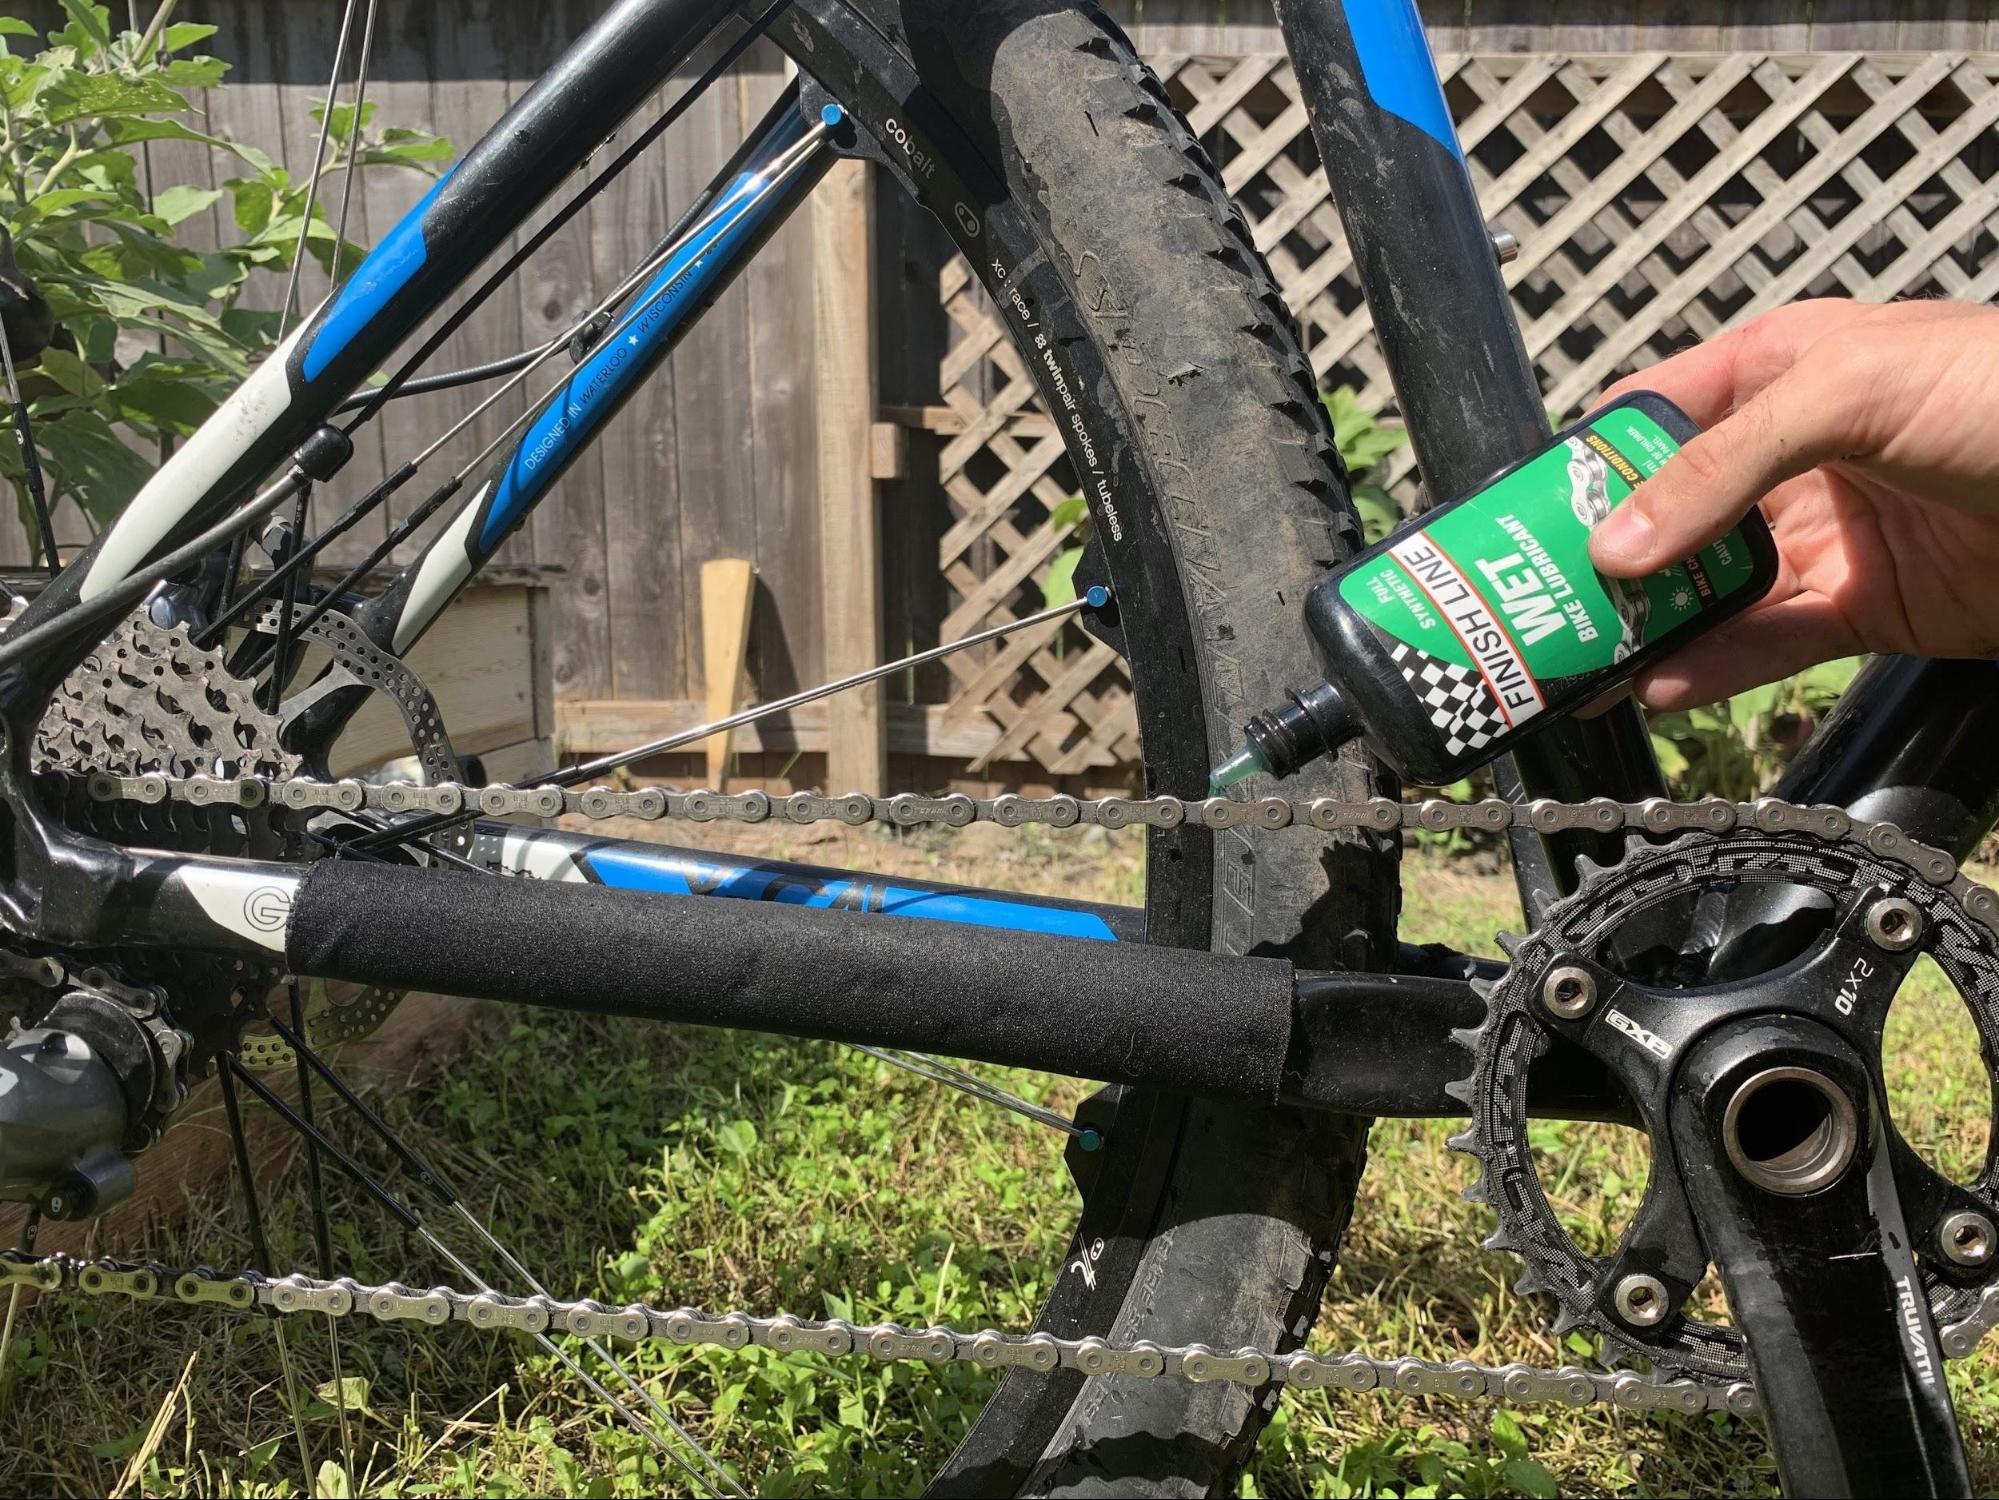 applying lube to bike chain